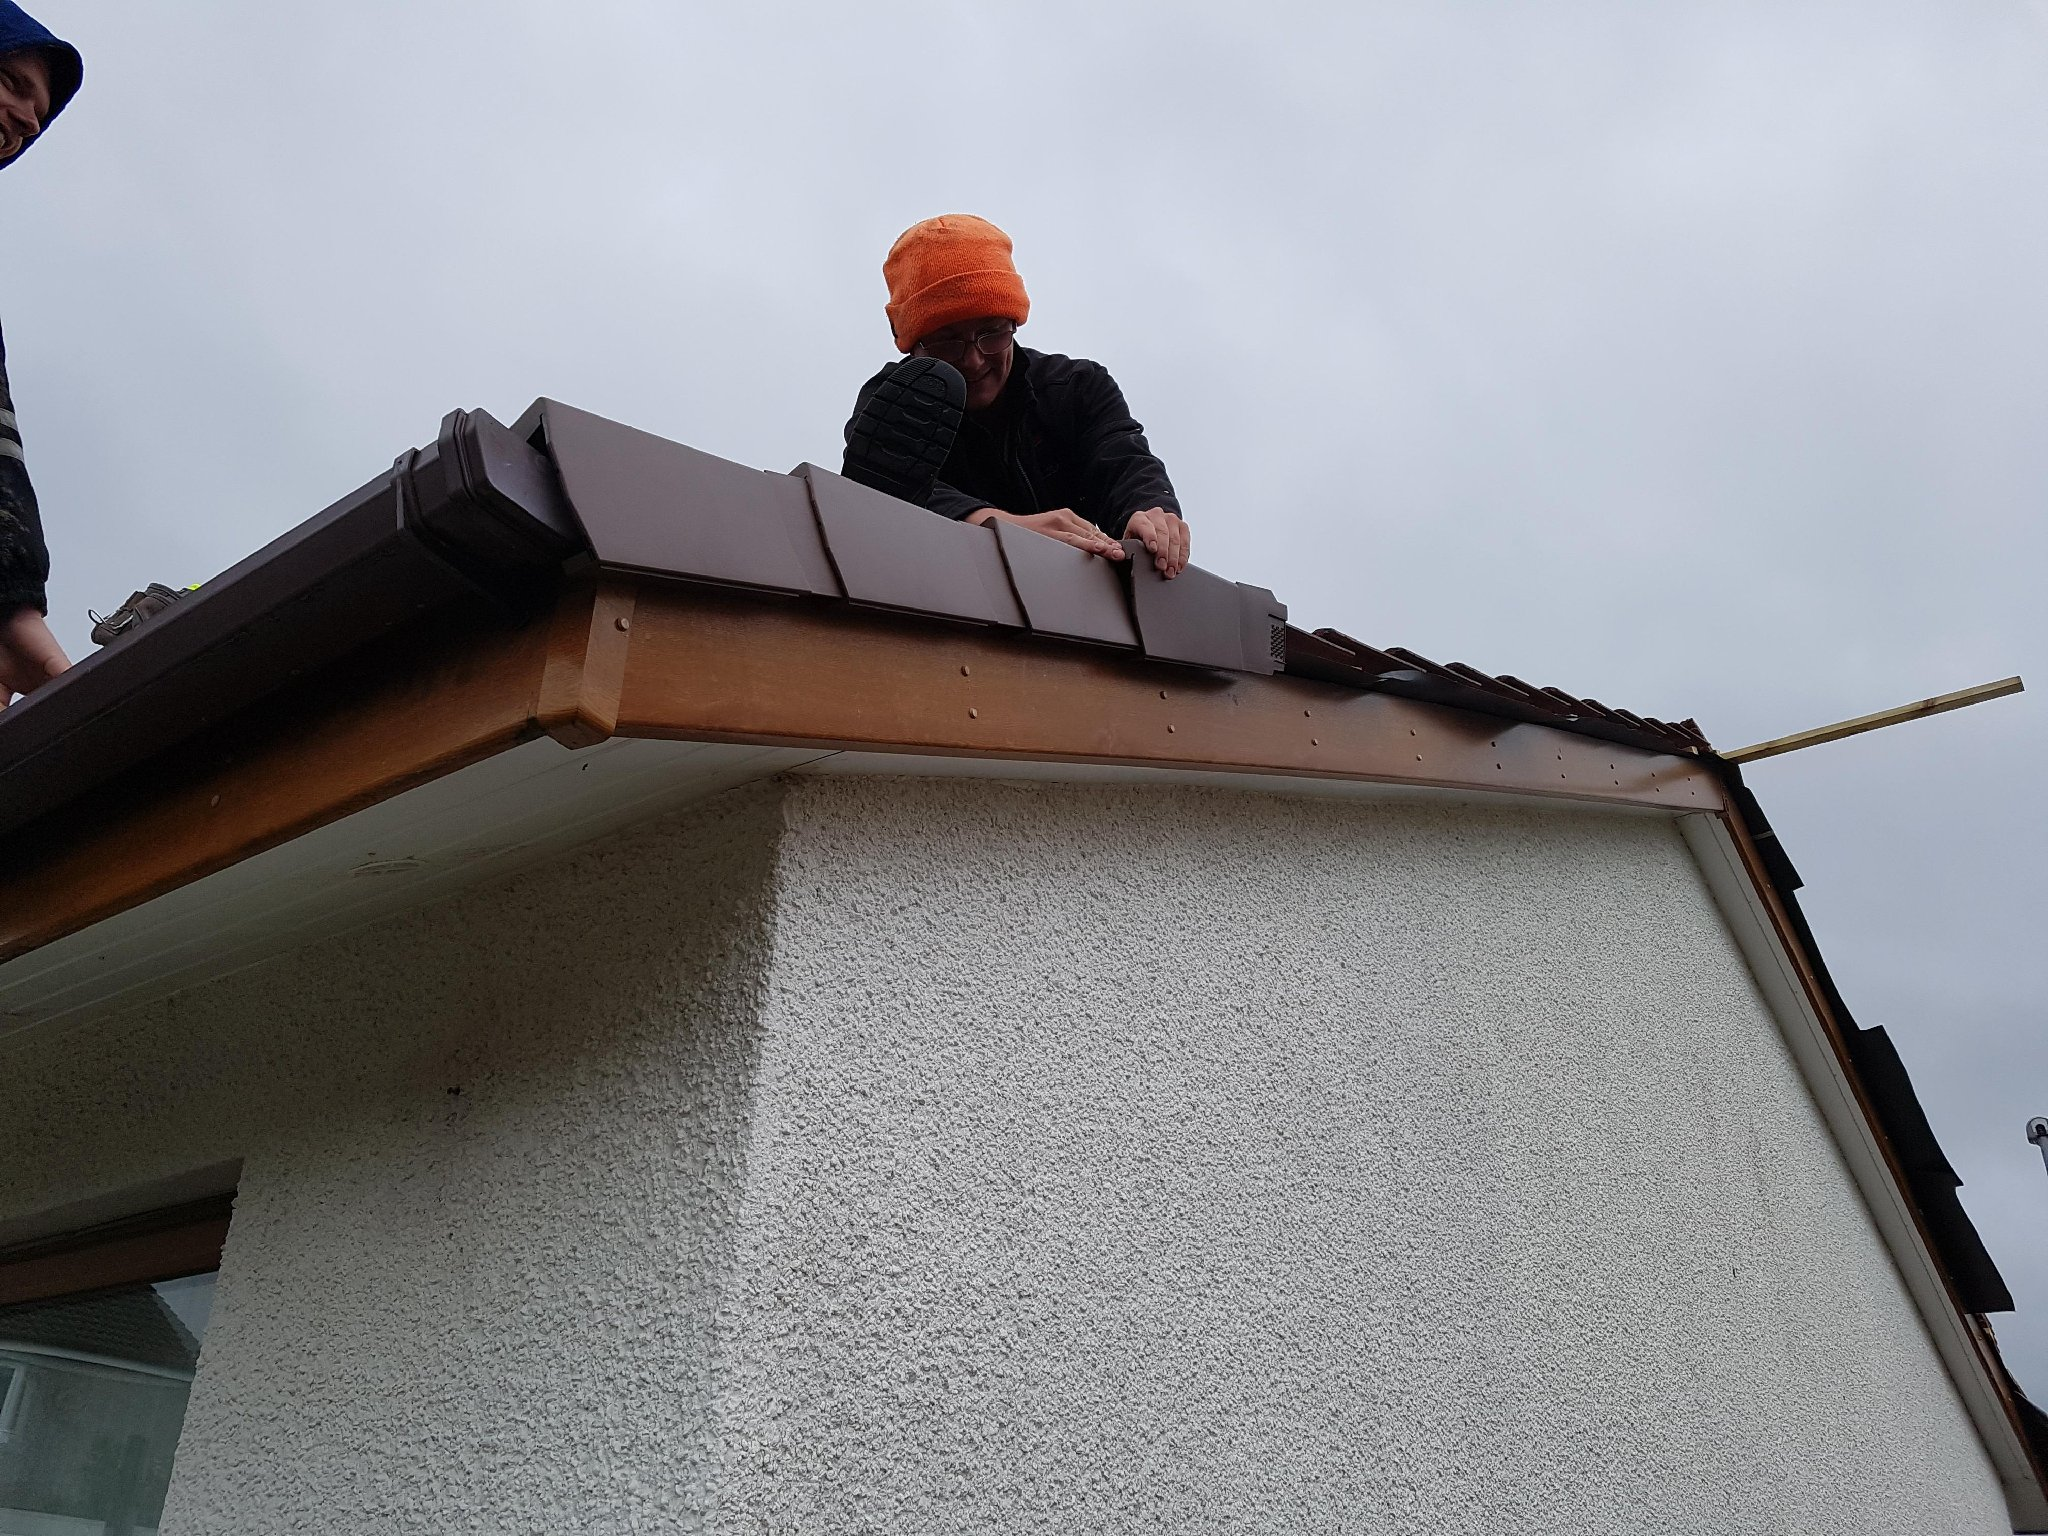 A Macdonald Roofing Amp Roughcasting In Kilwinning 4 Fir